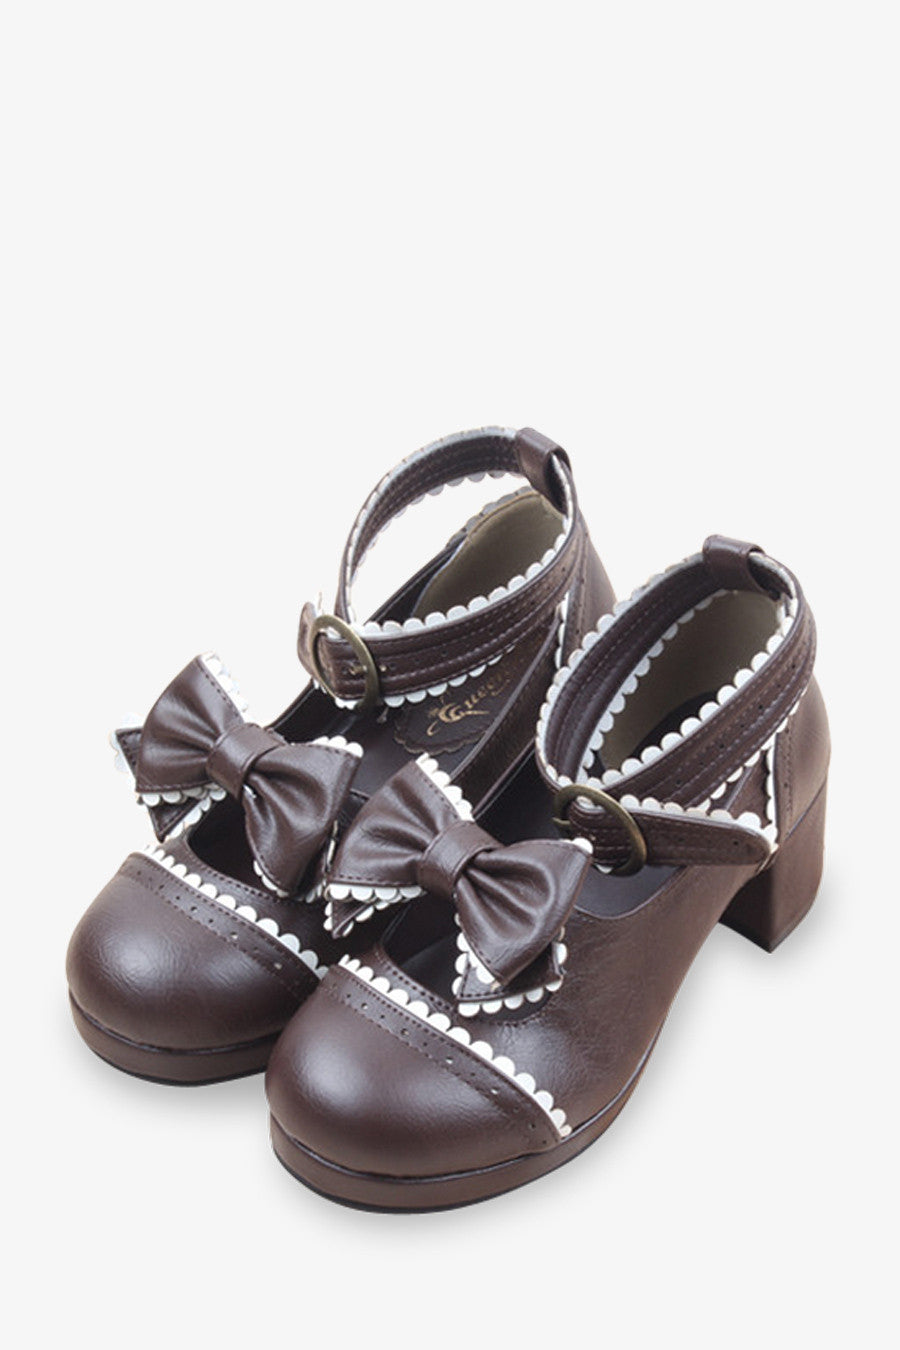 Lolita Platform Shoes In Brown